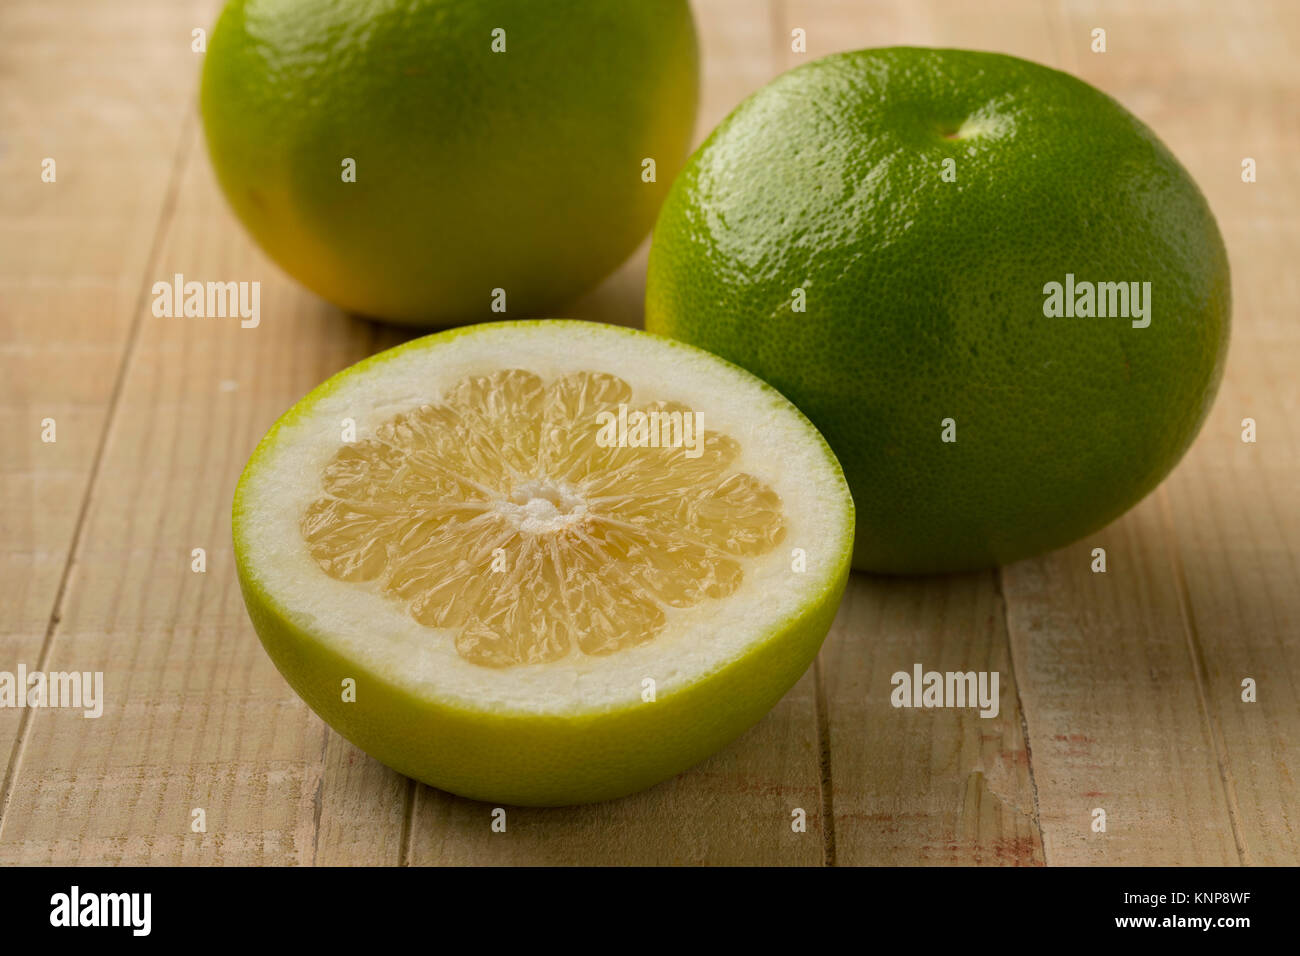 Whole and half fresh ripe oroblanco fruit - Stock Image